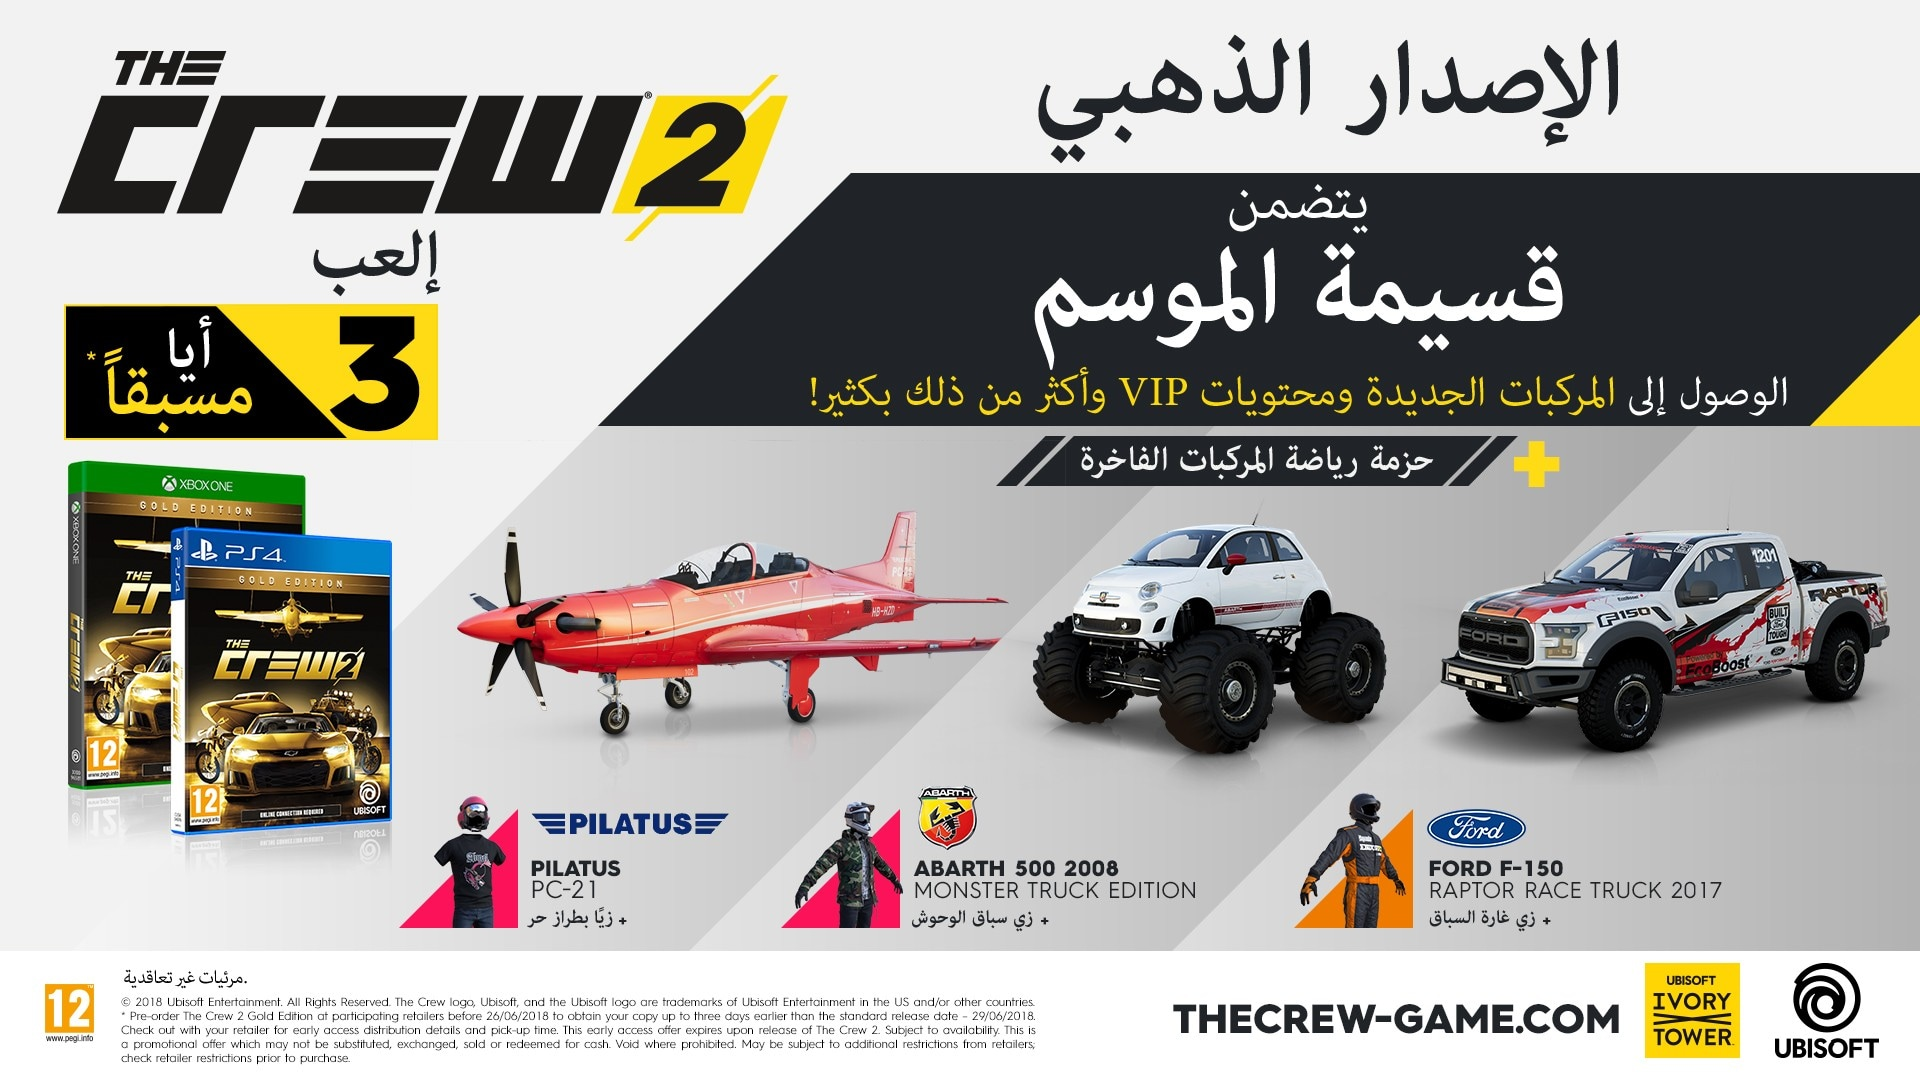 The Crew 2 Digital Gold Edition